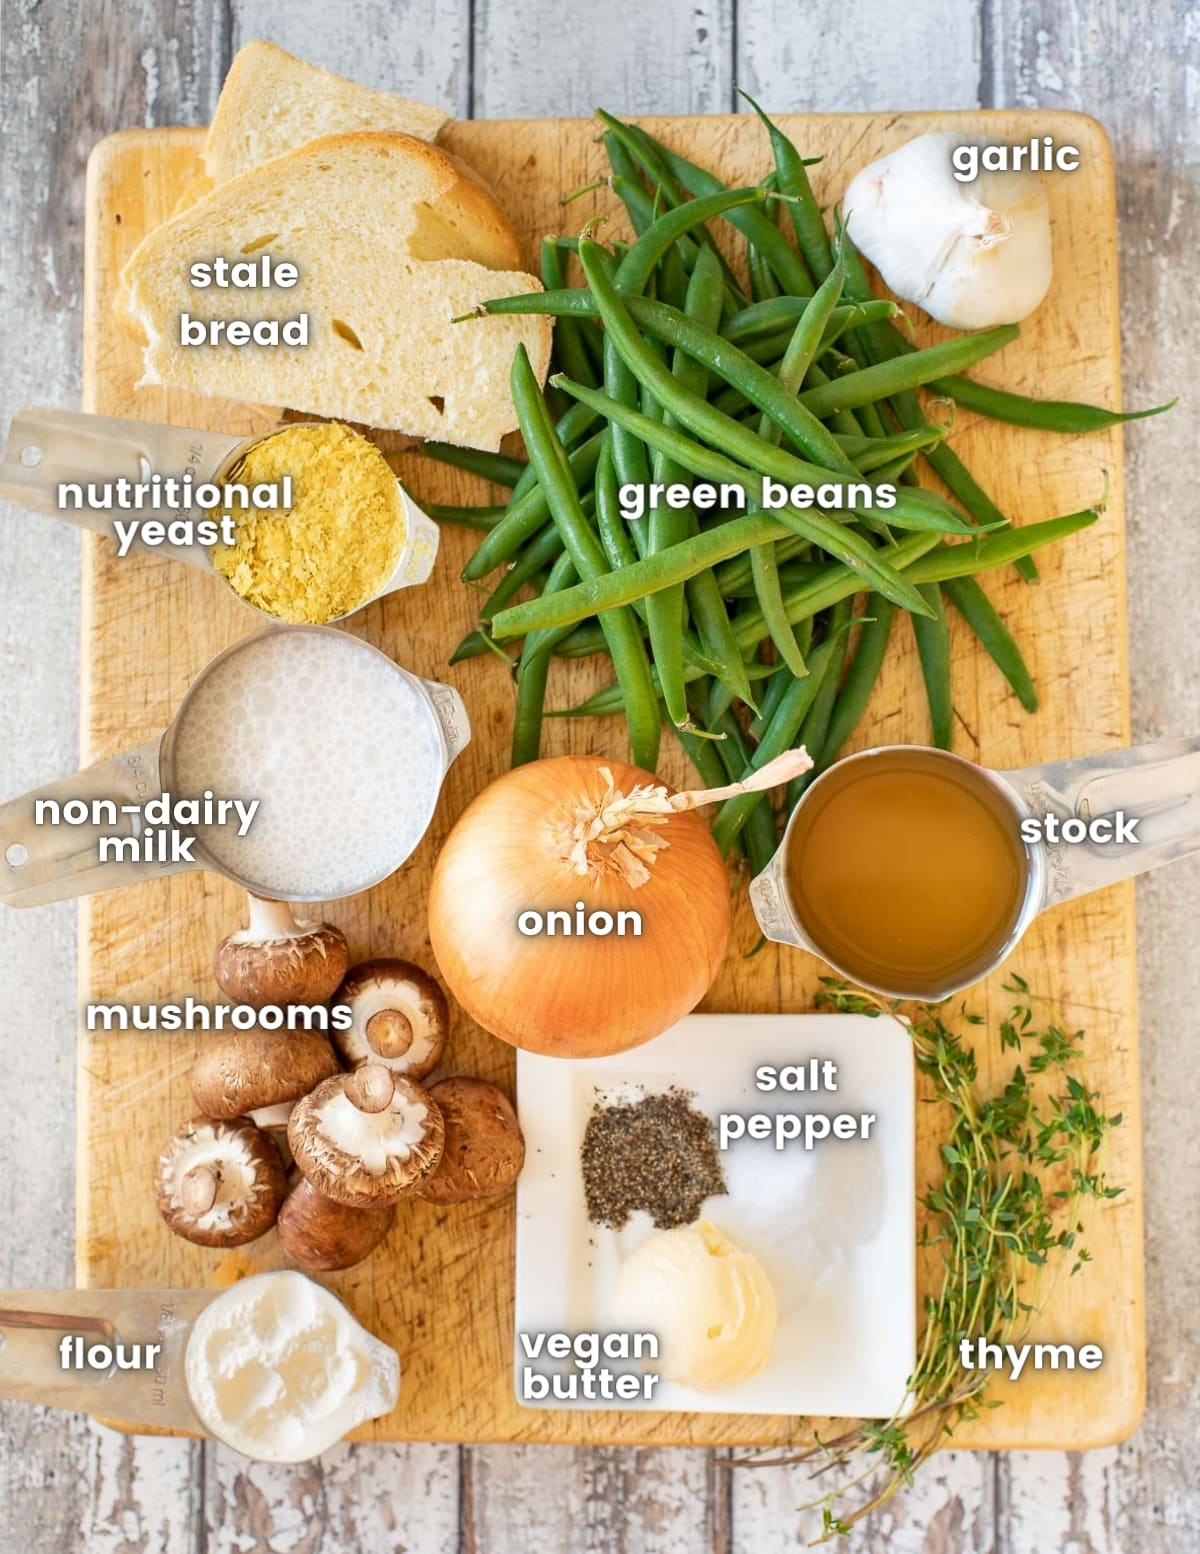 the ingredients for vegan green bean casserole on a wooden board